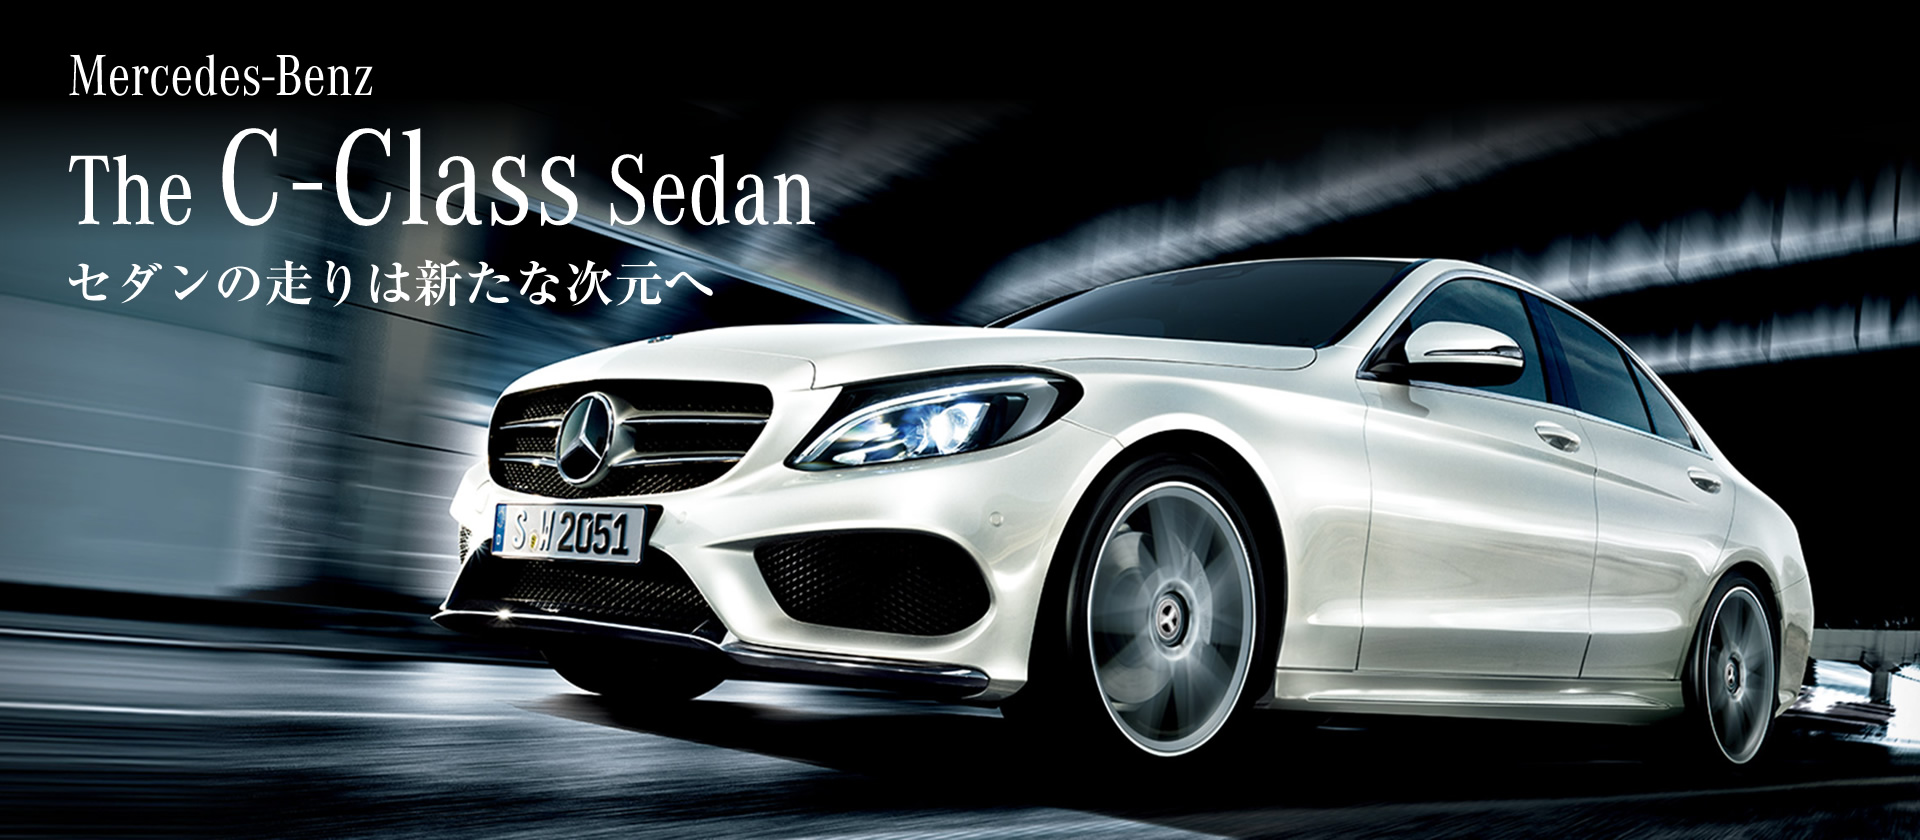 Mercedes-Benz The new C-Class セダンの走りは新たな次元へ